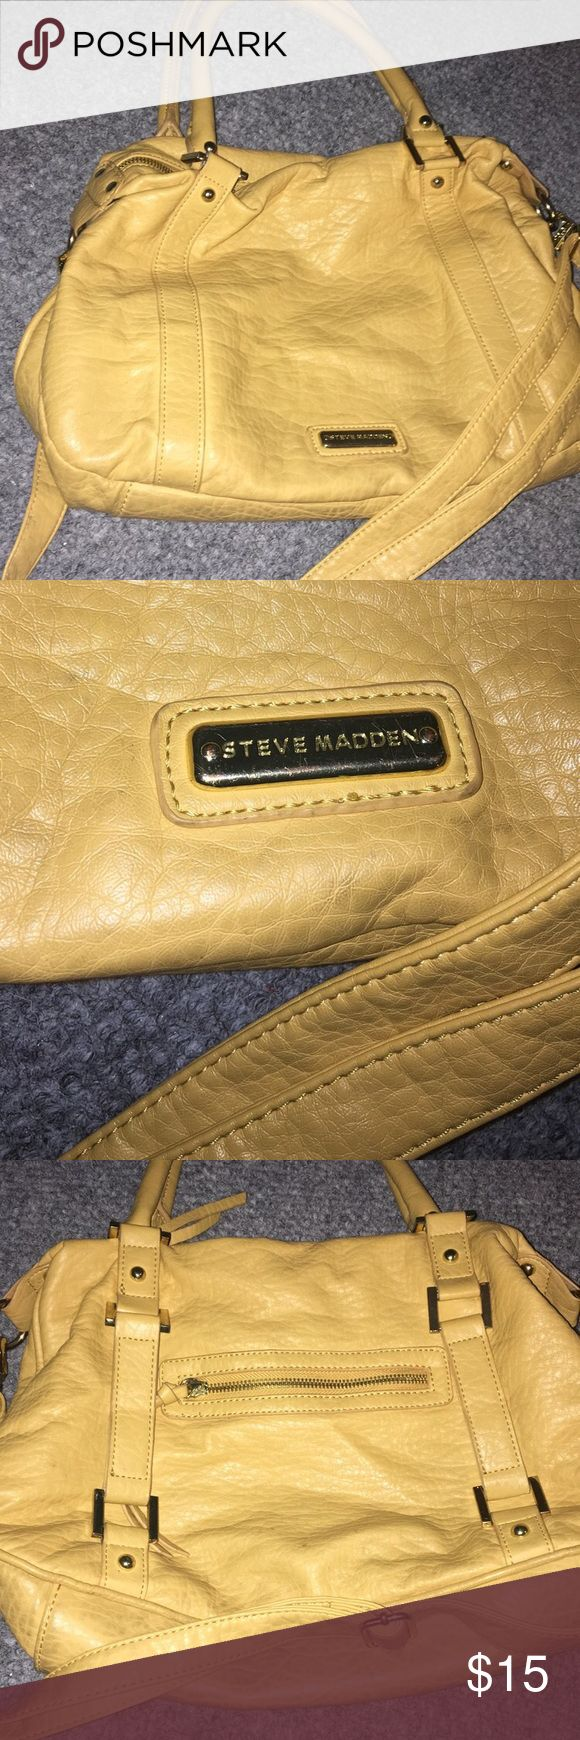 Steve Madden Purse Steve Madden Mustard Yellow Purse • Good Condition - has an ink spot stain inside that is displayed in the pictures • Gold Detailing Steve Madden Bags Crossbody Bags